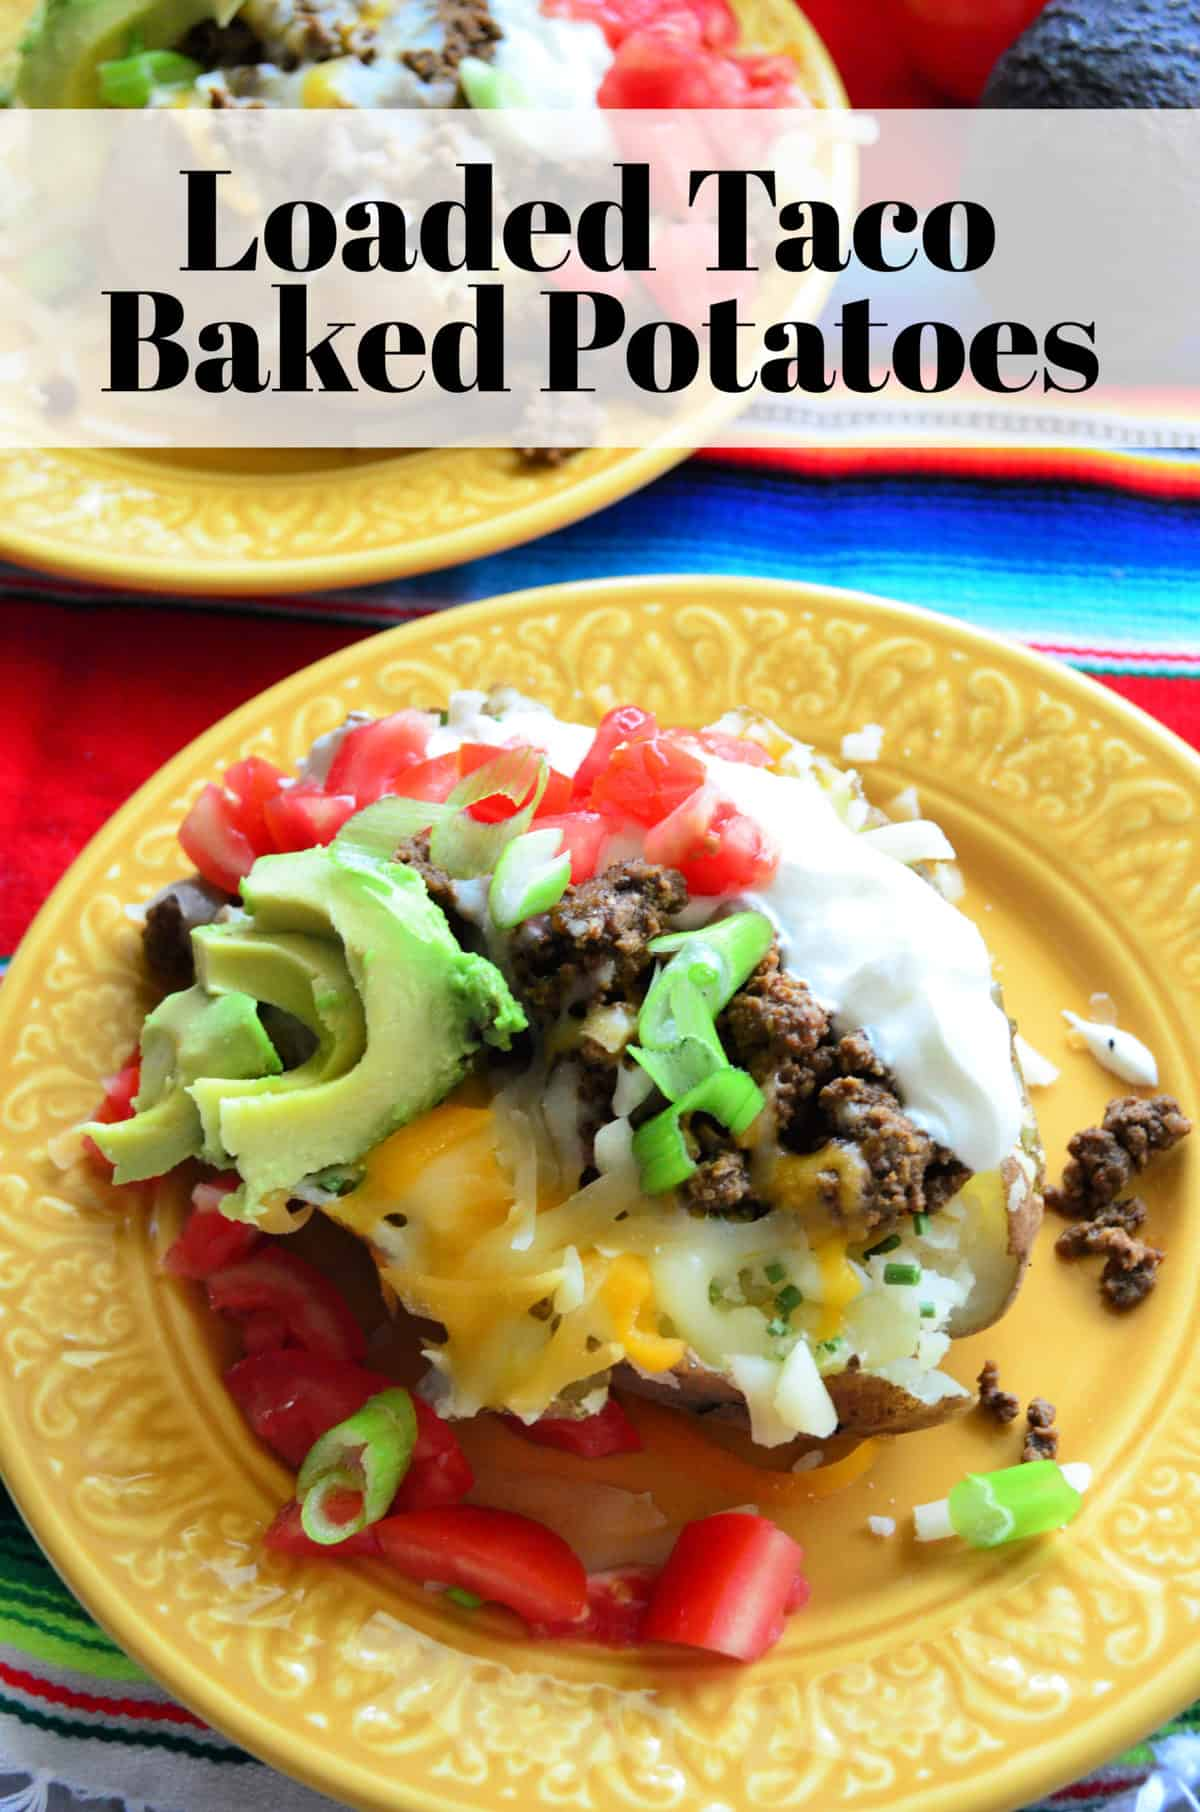 Top view of split baked potato with sour cream, meat, tomato, cheese, avocado with title text.